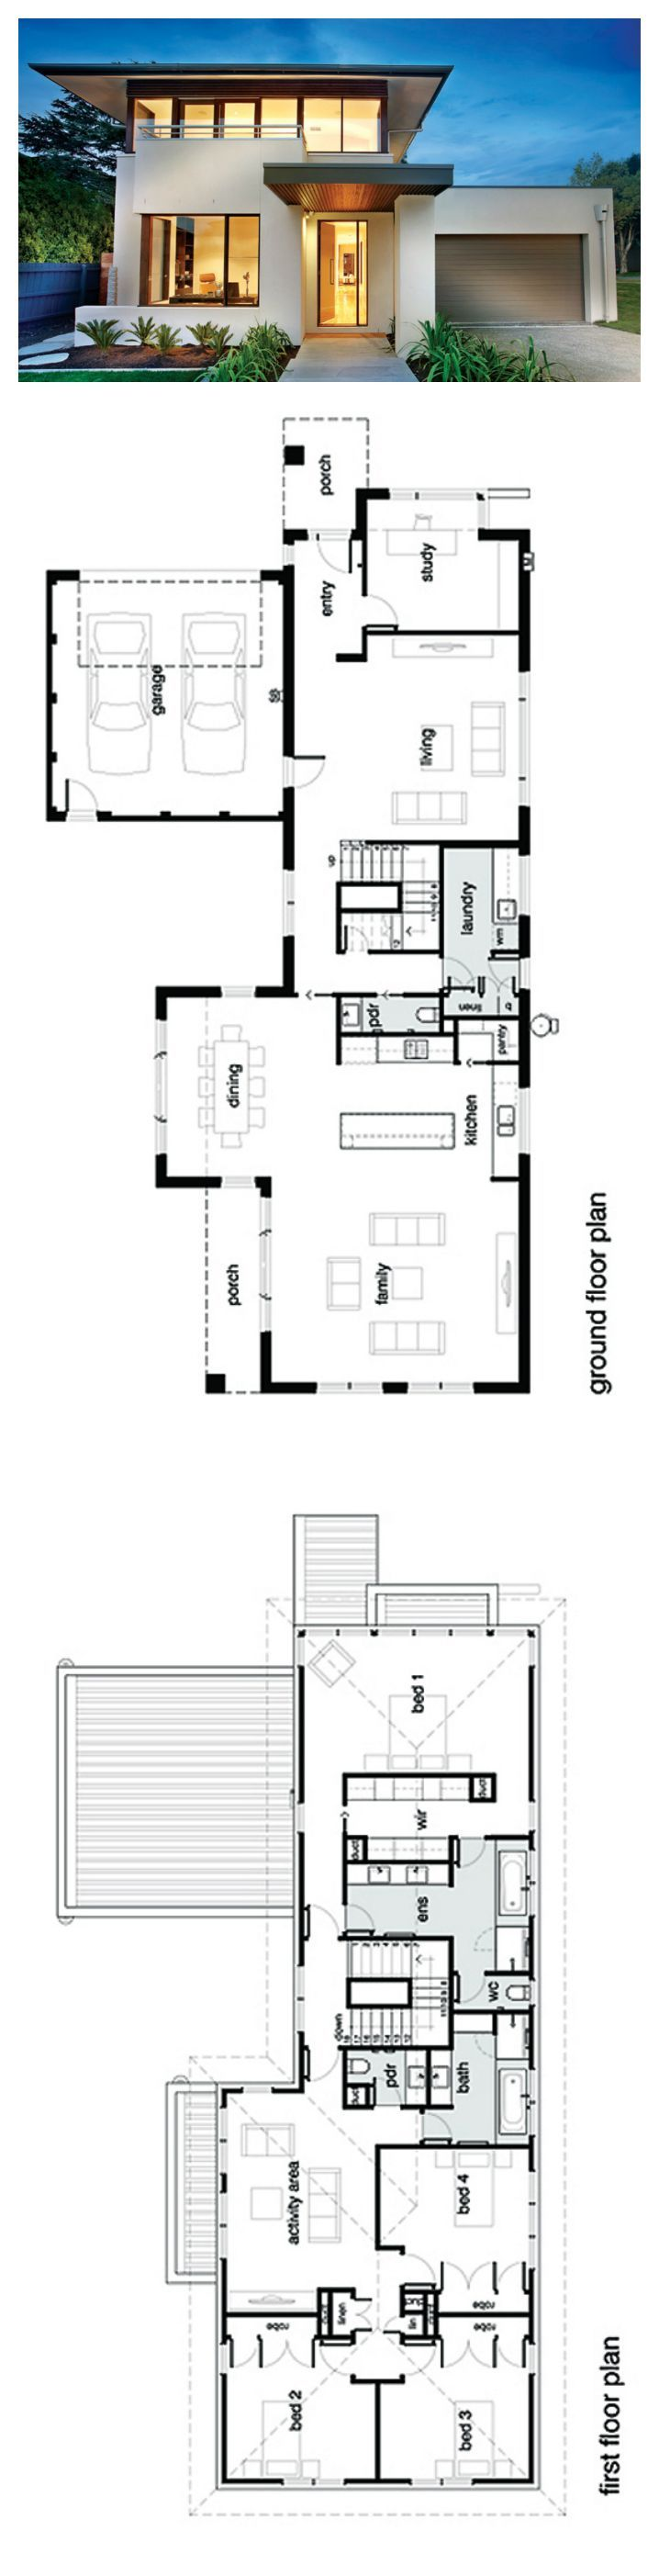 Best 25 modern house plans ideas on pinterest modern for Contemporary home floor plans